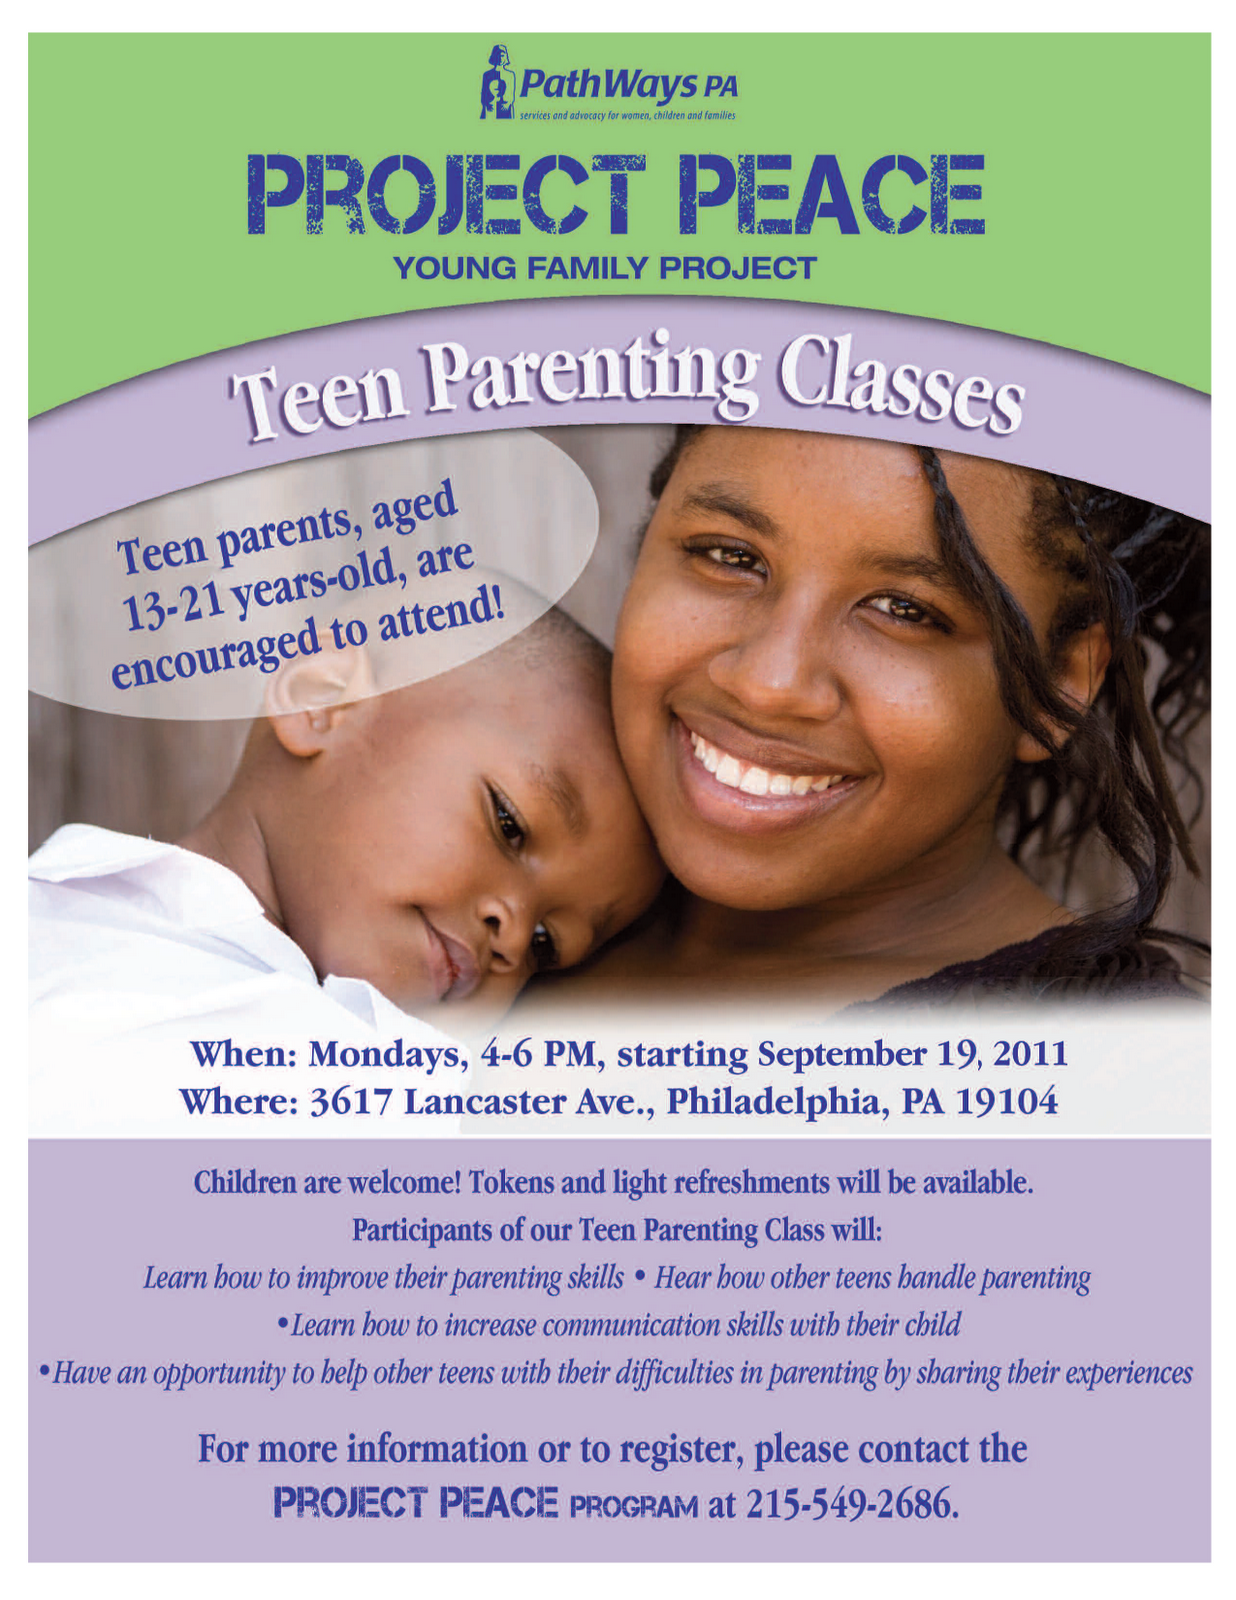 teen parenting program The teen parent child development services program provides developmental education, assessment, counseling, and practicum activities to promote positive developmental parenting for pregnant girls, young fathers-tobe, and parenting teens of both sexes.